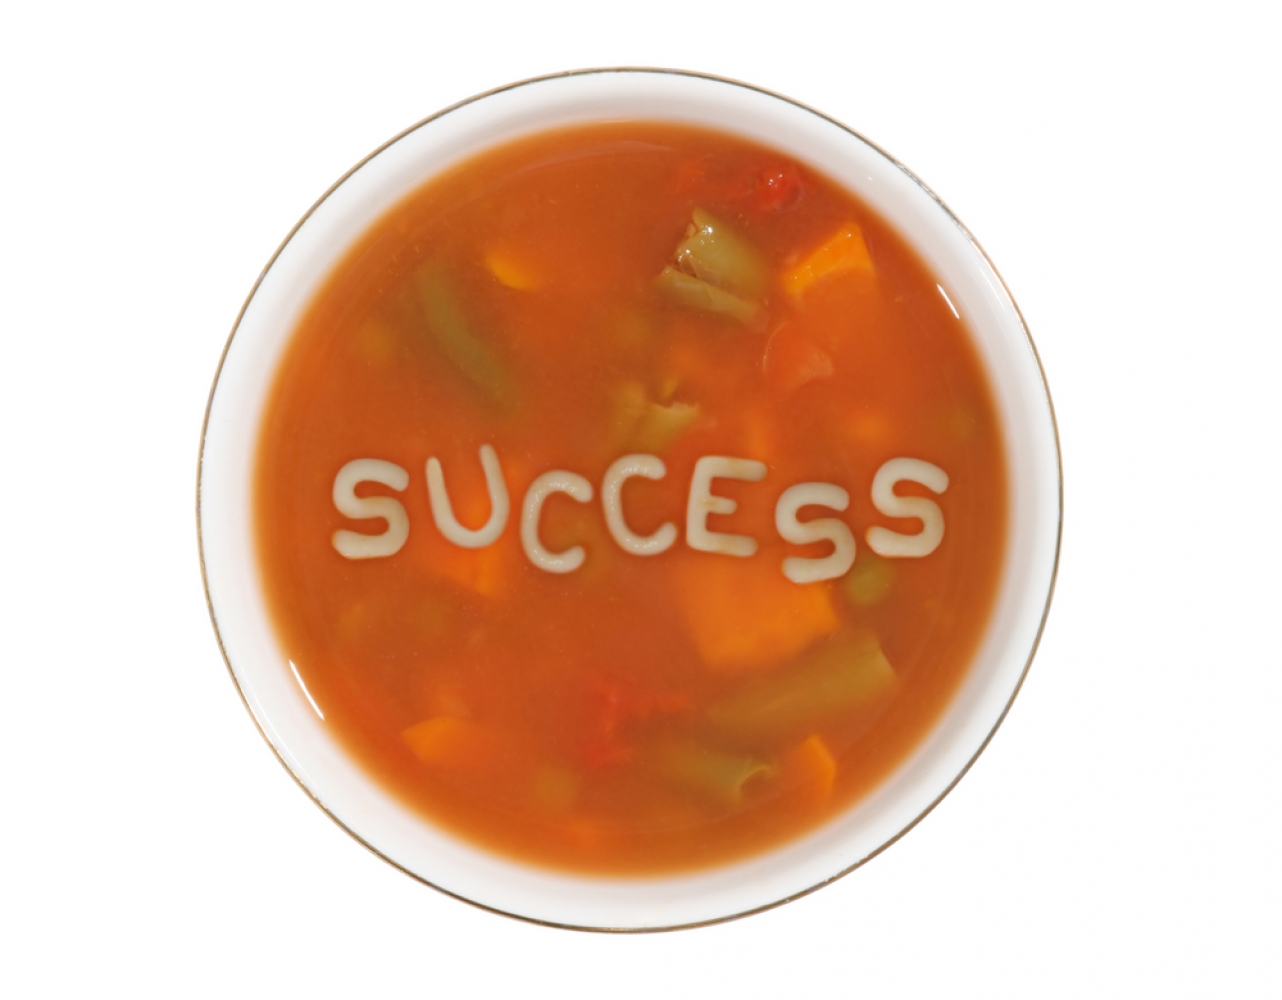 Do you see hidden messages in your alphabet soup?